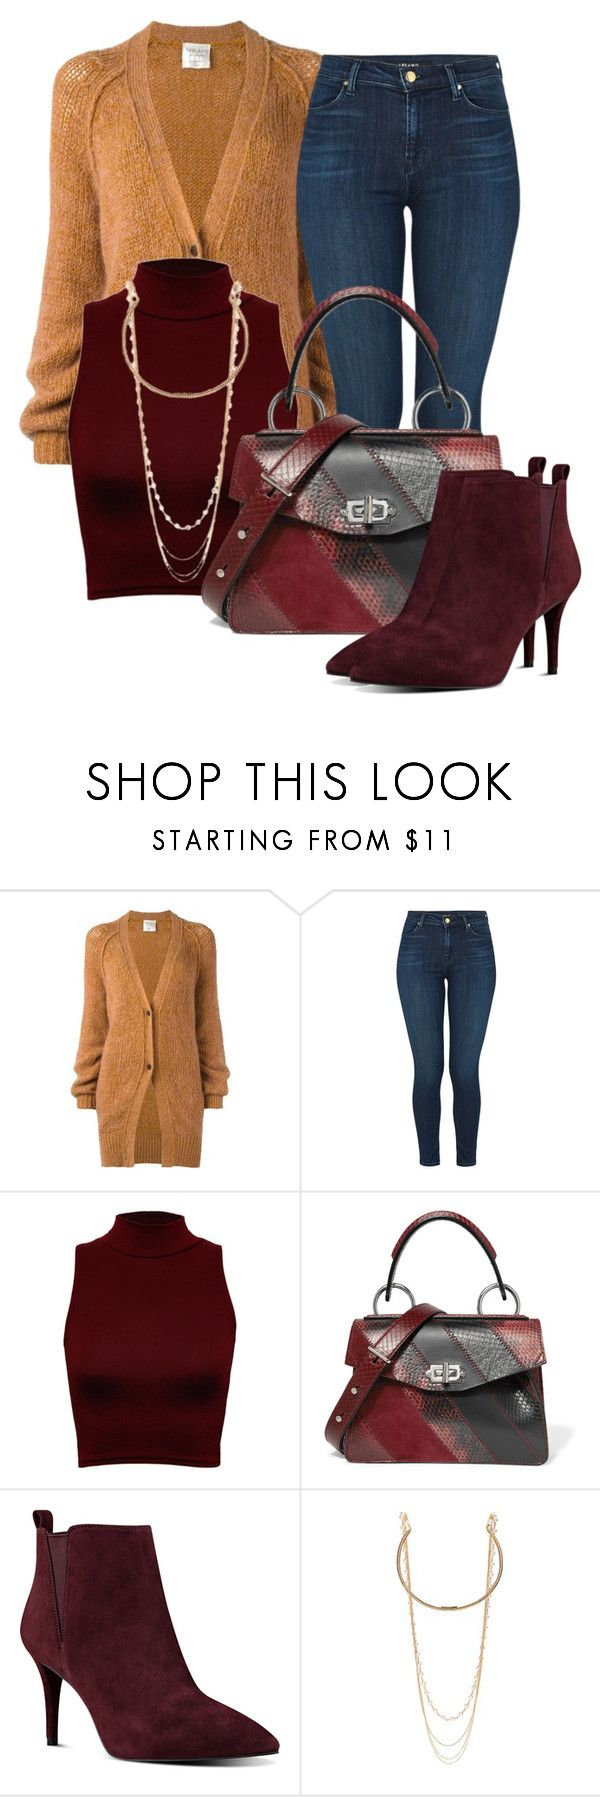 """Untitled #1036"" by deb105 ❤ liked on Polyvore featuring Forte Forte, J Brand, WearAll, Proenza Schouler, Nine West and Marc Jacobs"